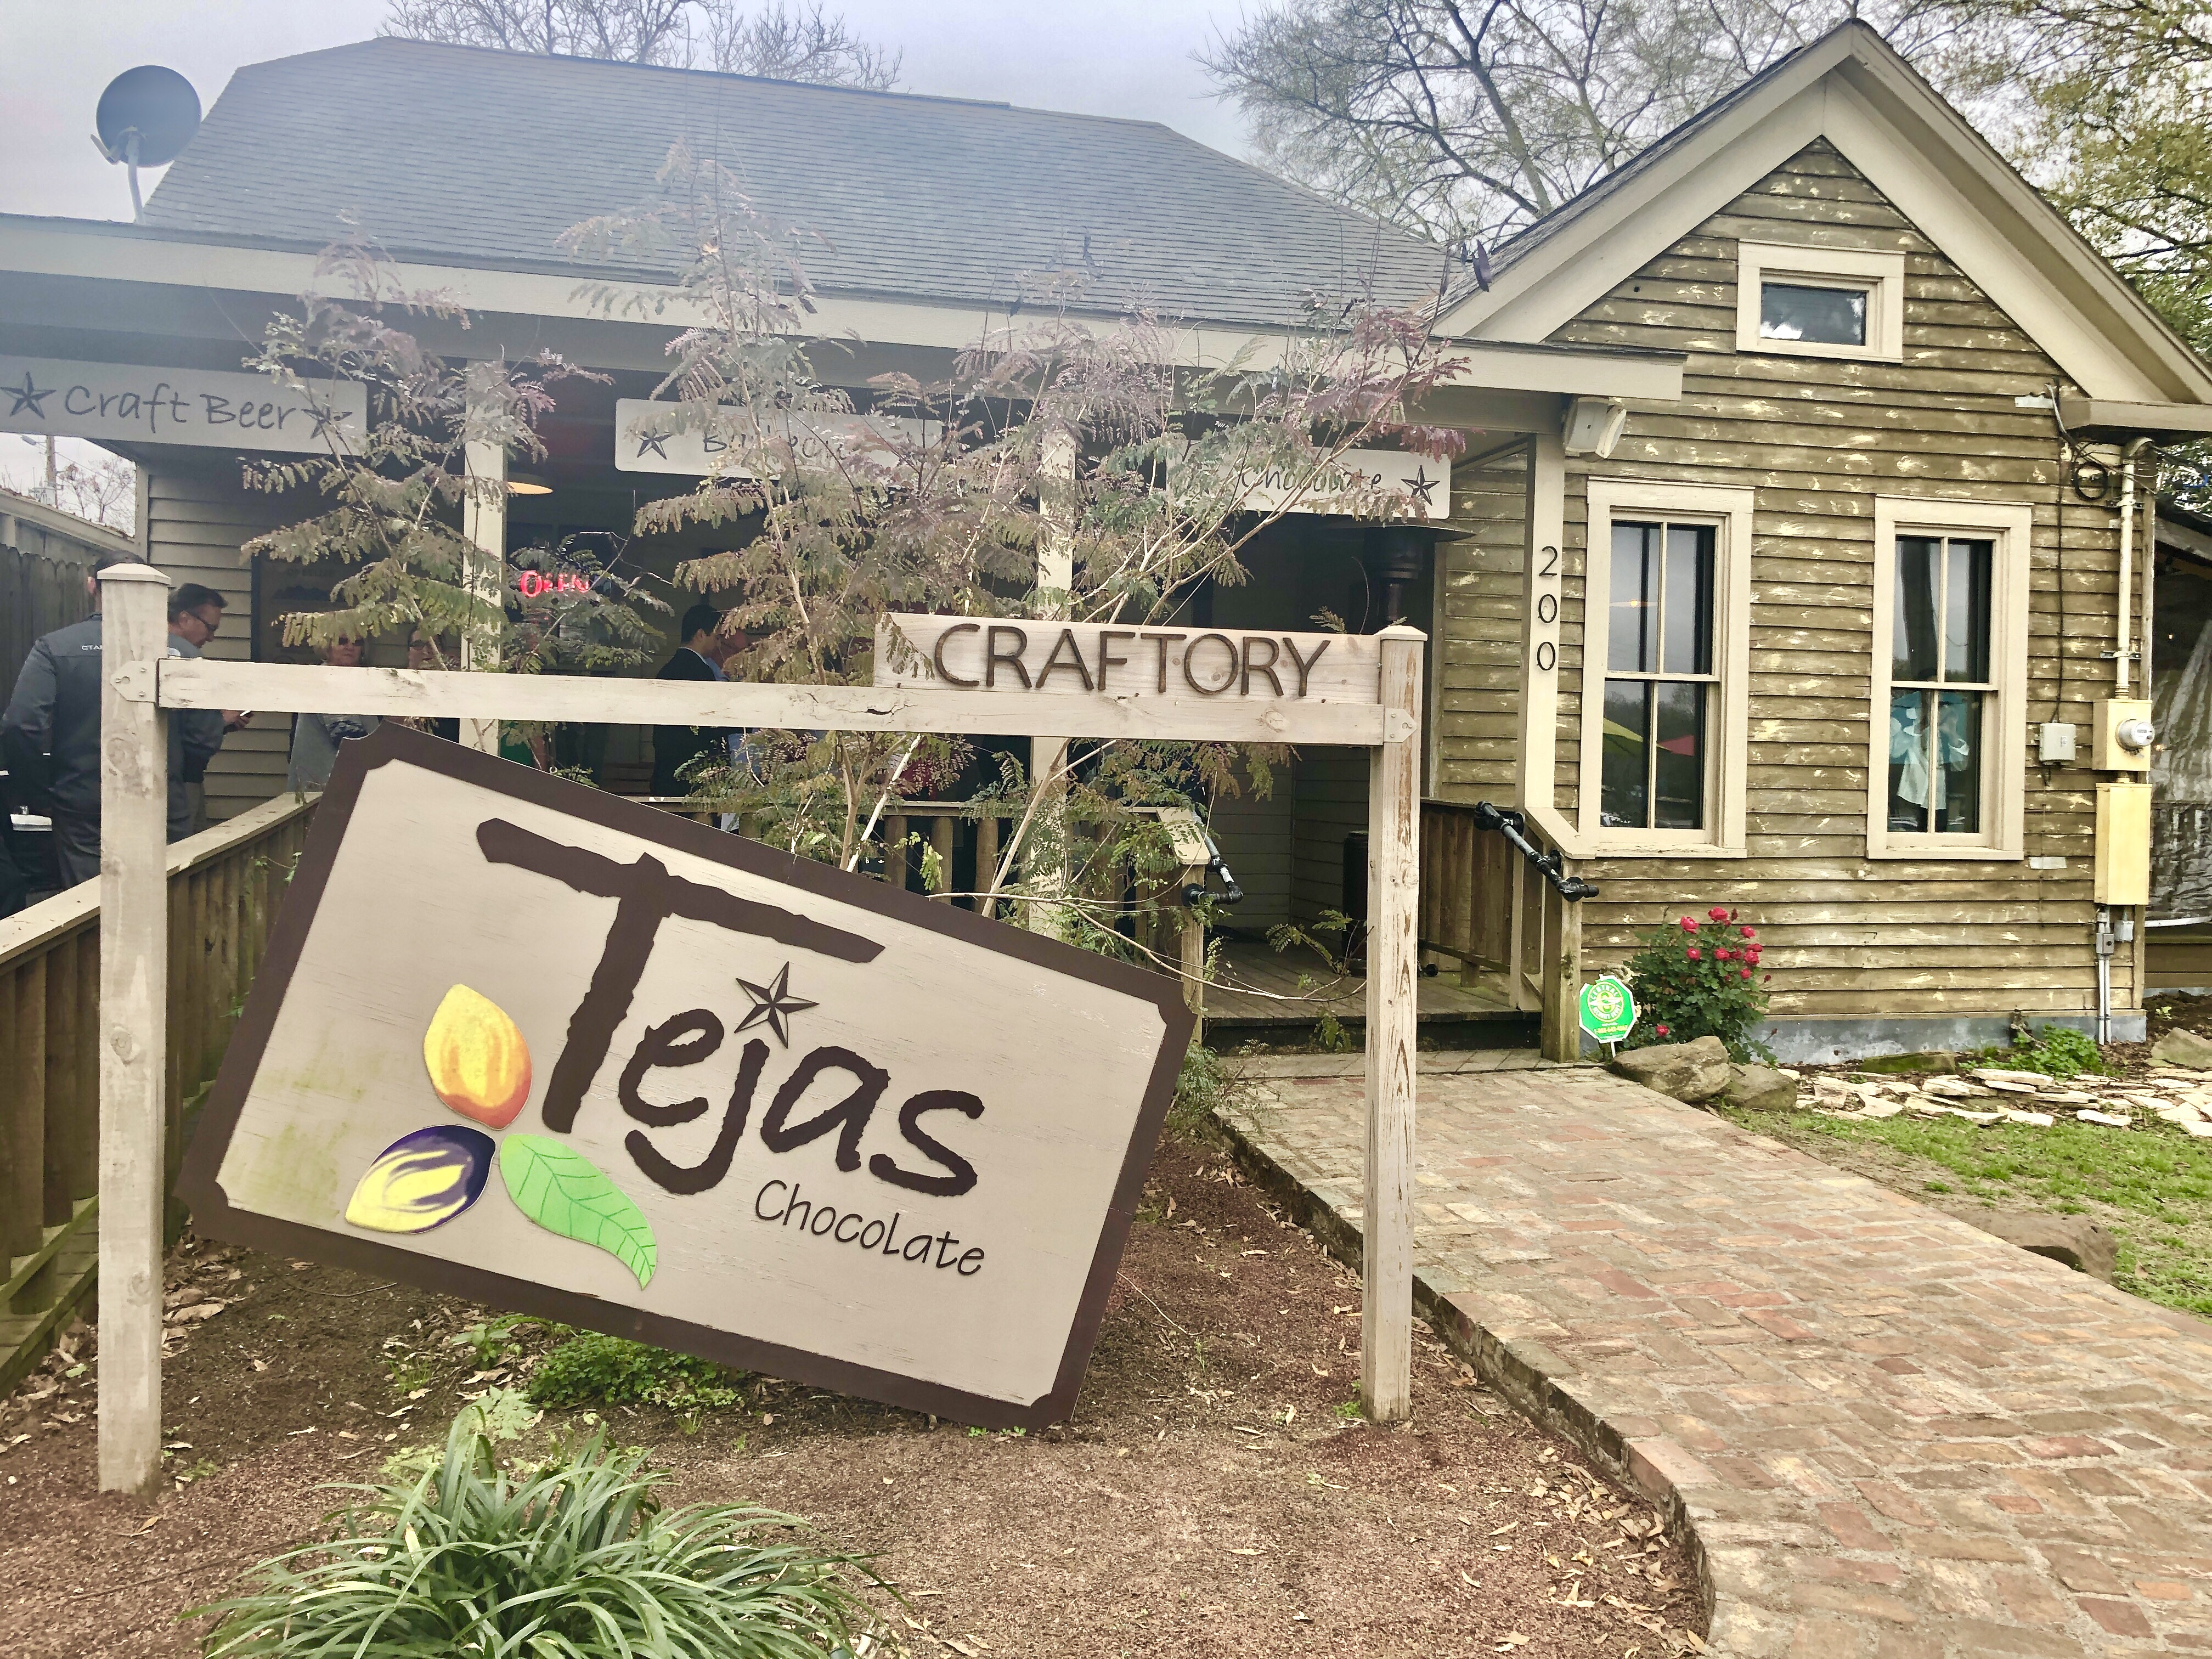 Tejas Chocolate and Barbecue in Tomball, Texas